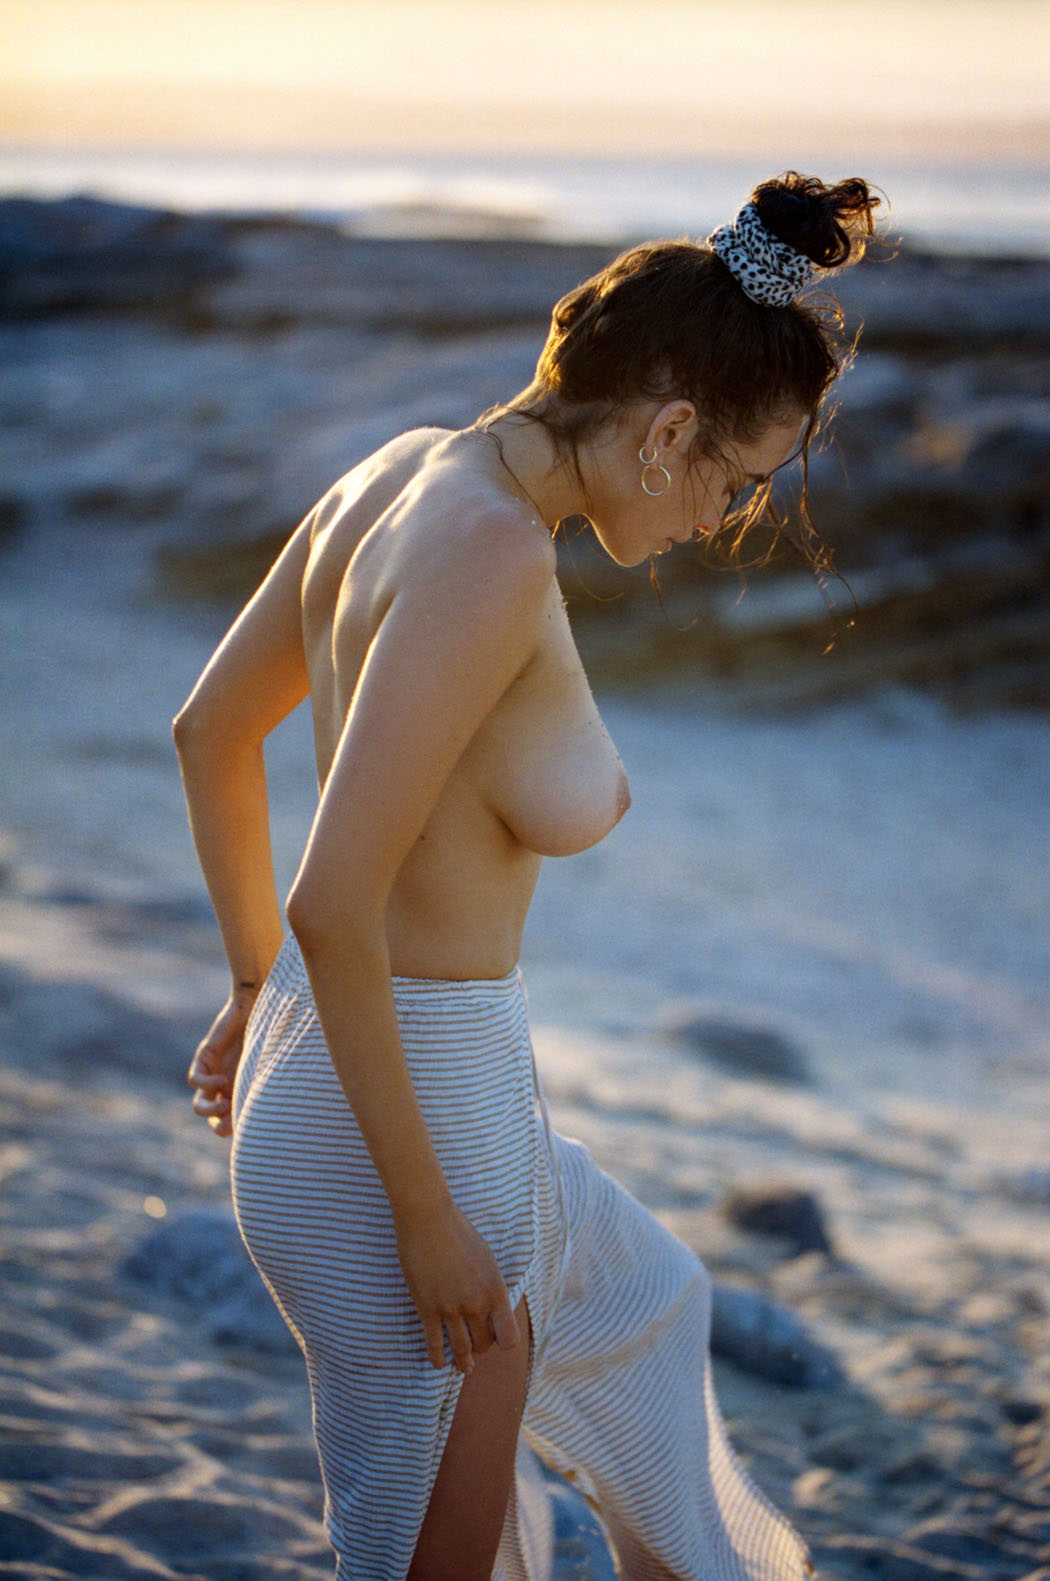 sarah-stephens-seaside-erotic-photo-by-cameron-mackie-25